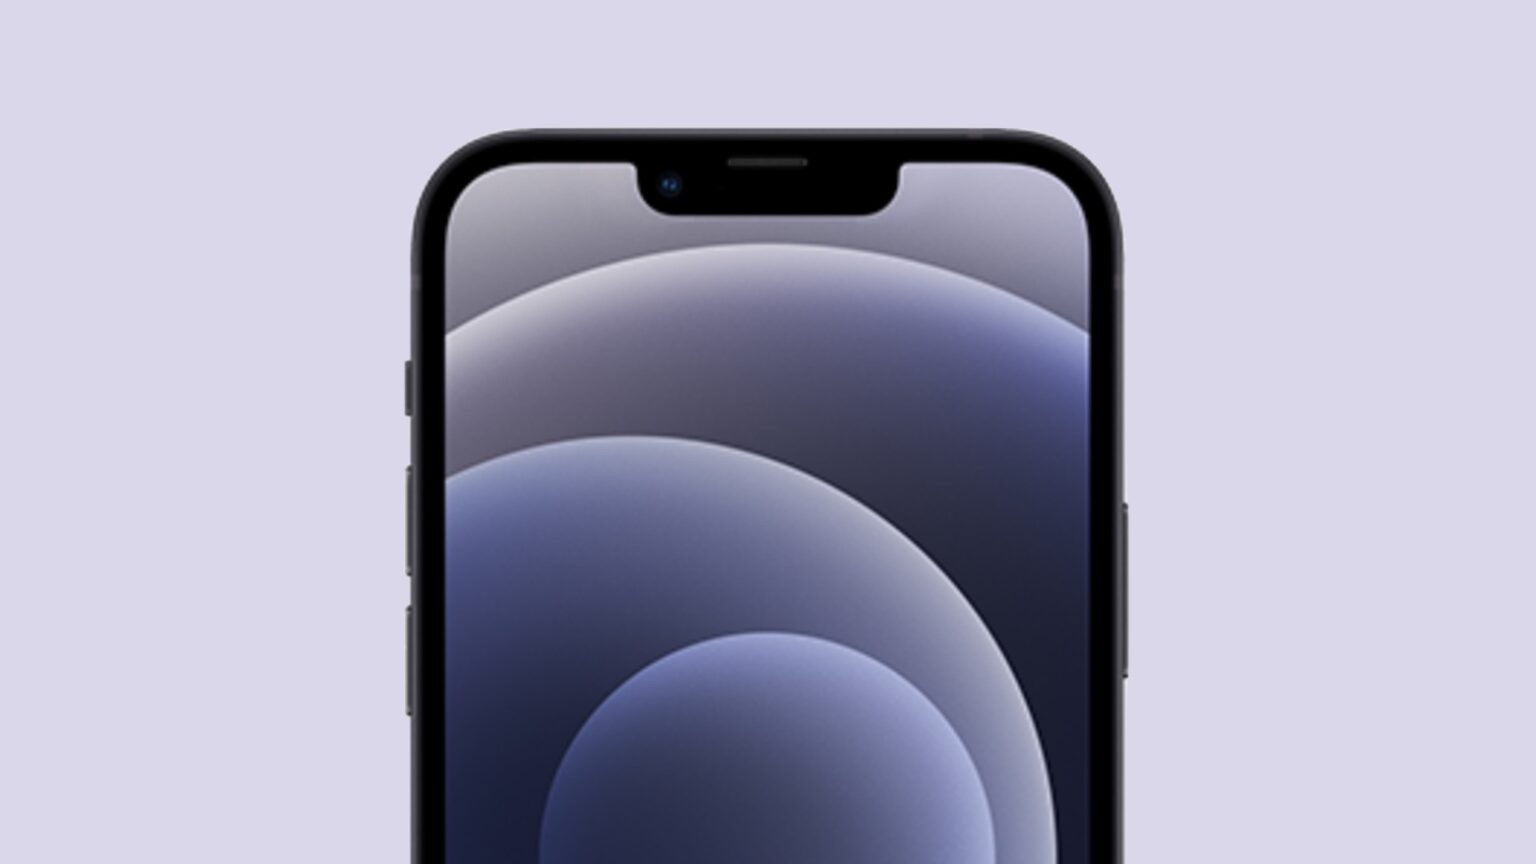 This concept image shows how the iPhone 13 notch might shrink.